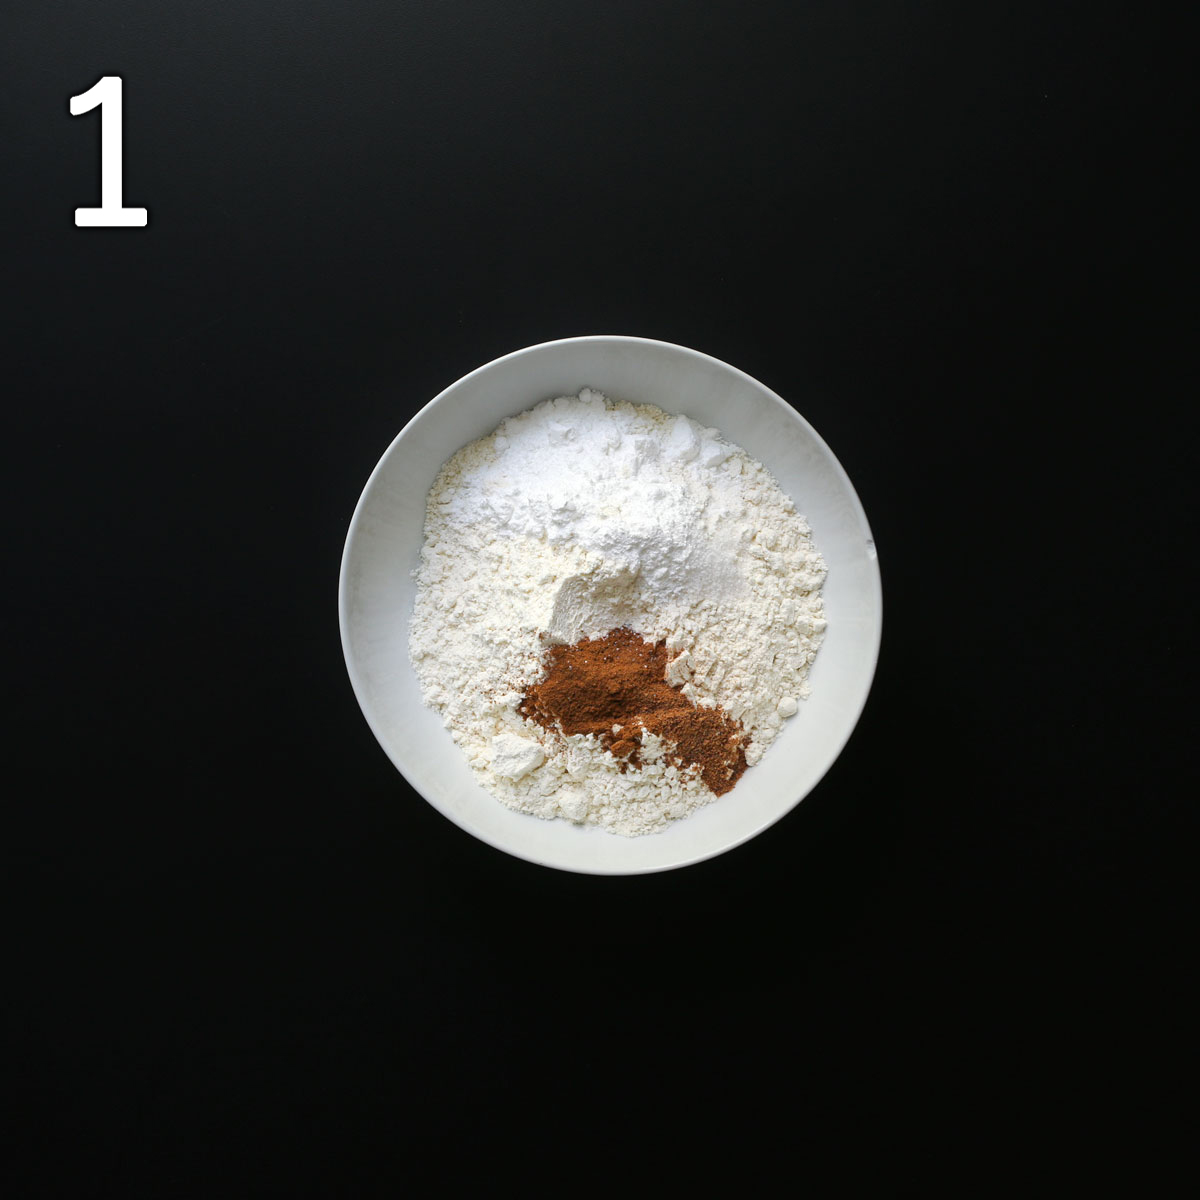 dry ingredients in small white bowl.